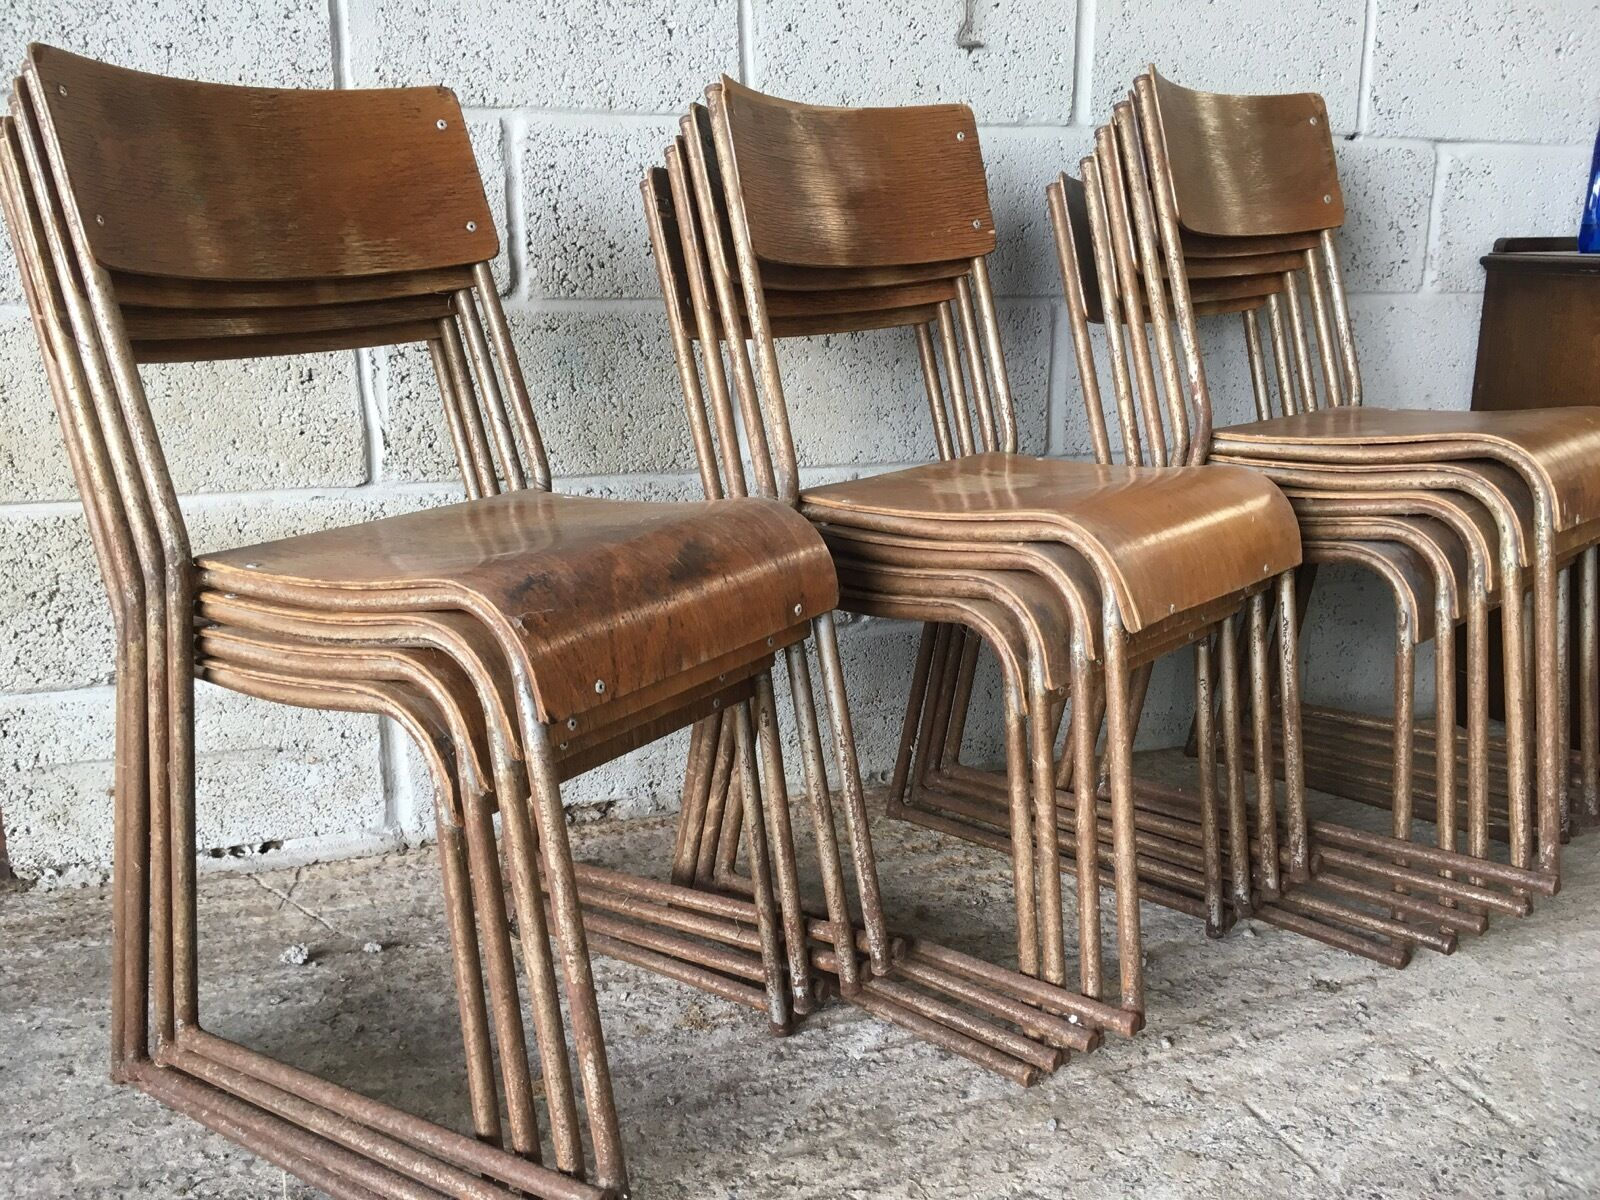 13 X Vintage Retro Stacking Chairs Metal Plywood Industrial School Old Church